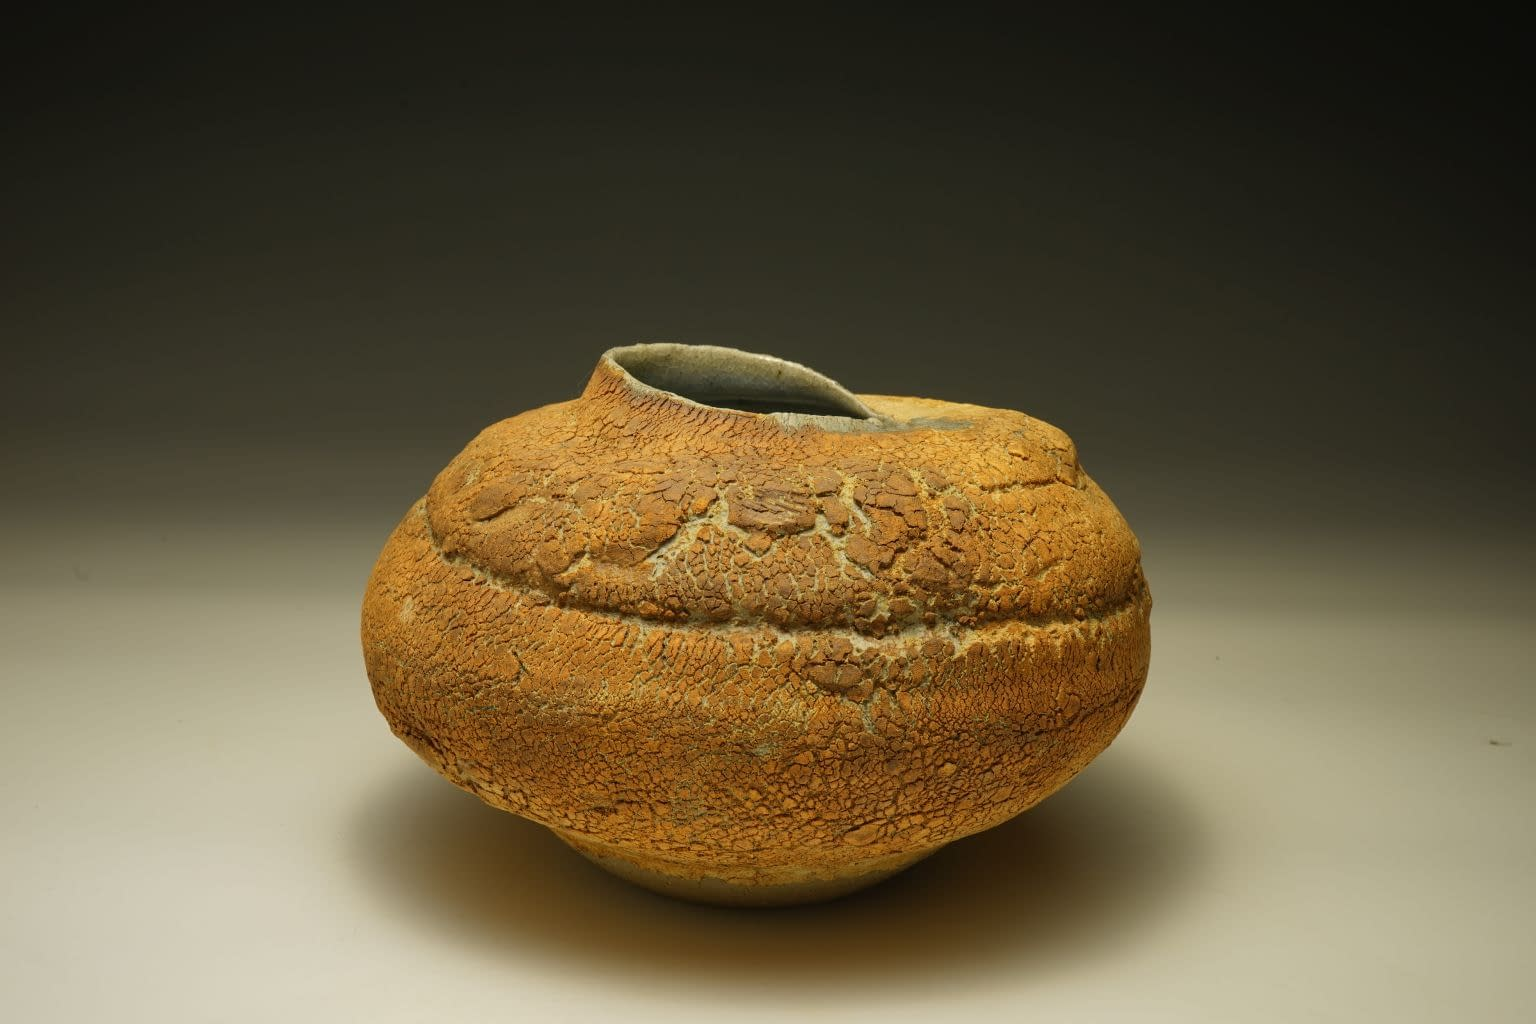 Ikebana container/ vase in natural earth texture